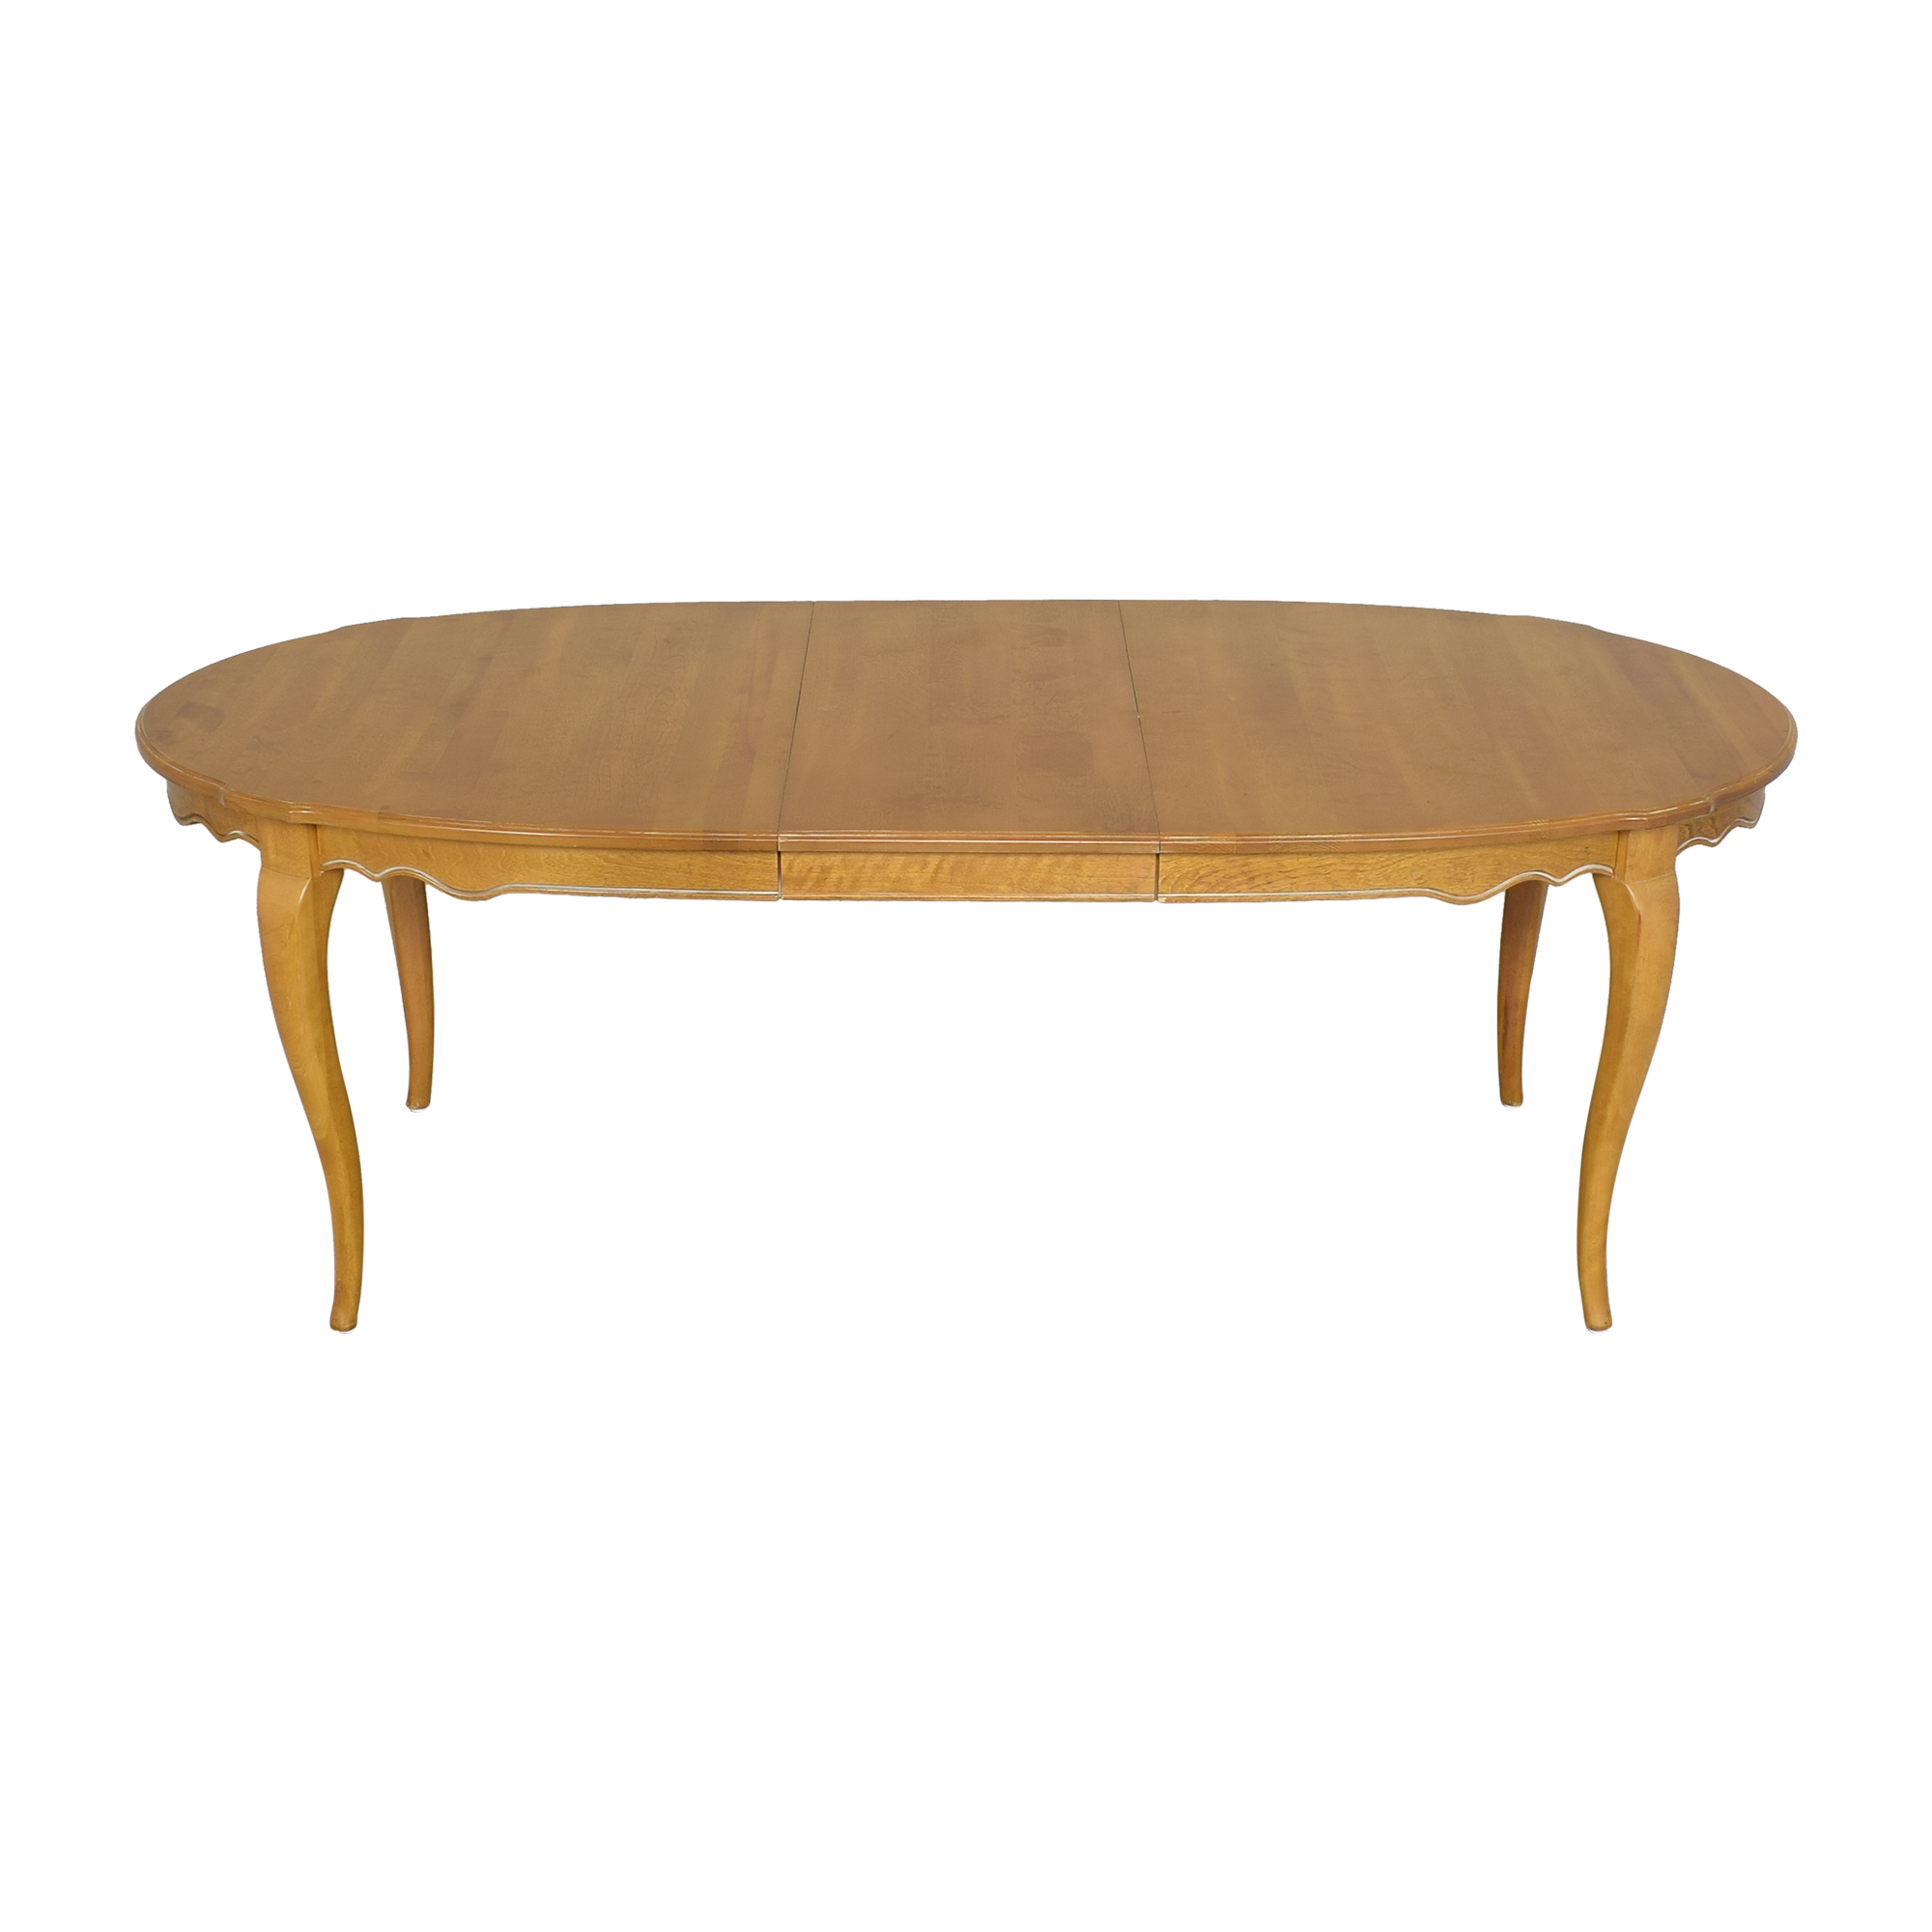 Ethan Allen Ethan Allen Country French Extendable Dining Table discount